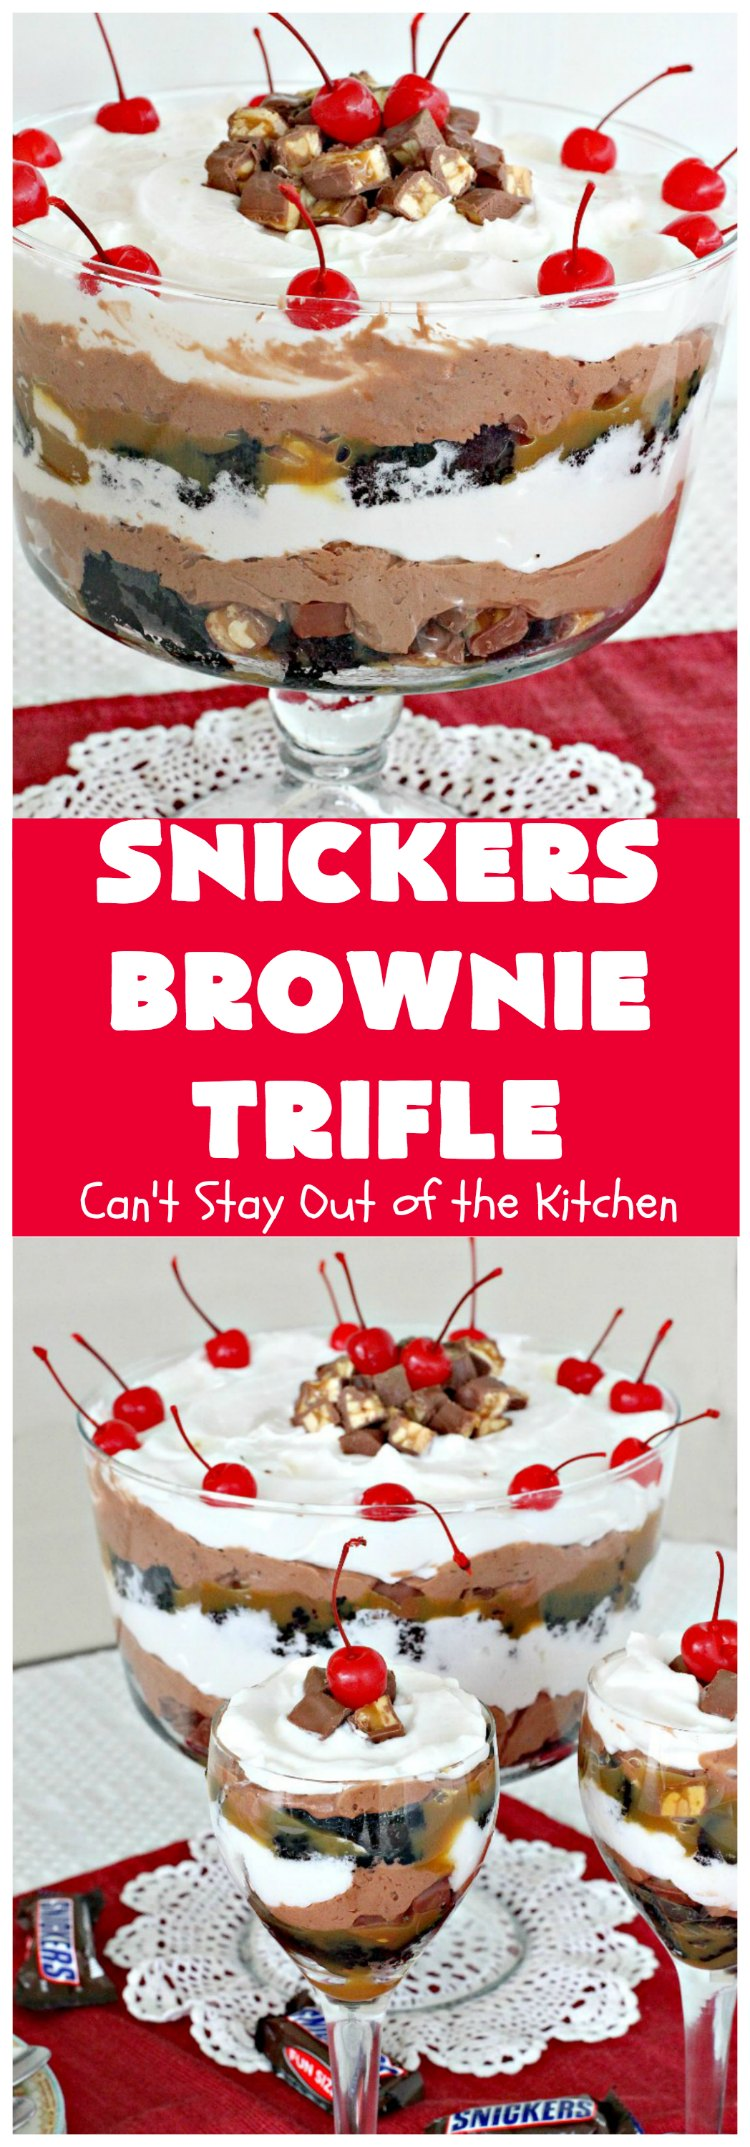 Snickers Brownie Trifle | Can't Stay Out of the Kitchen